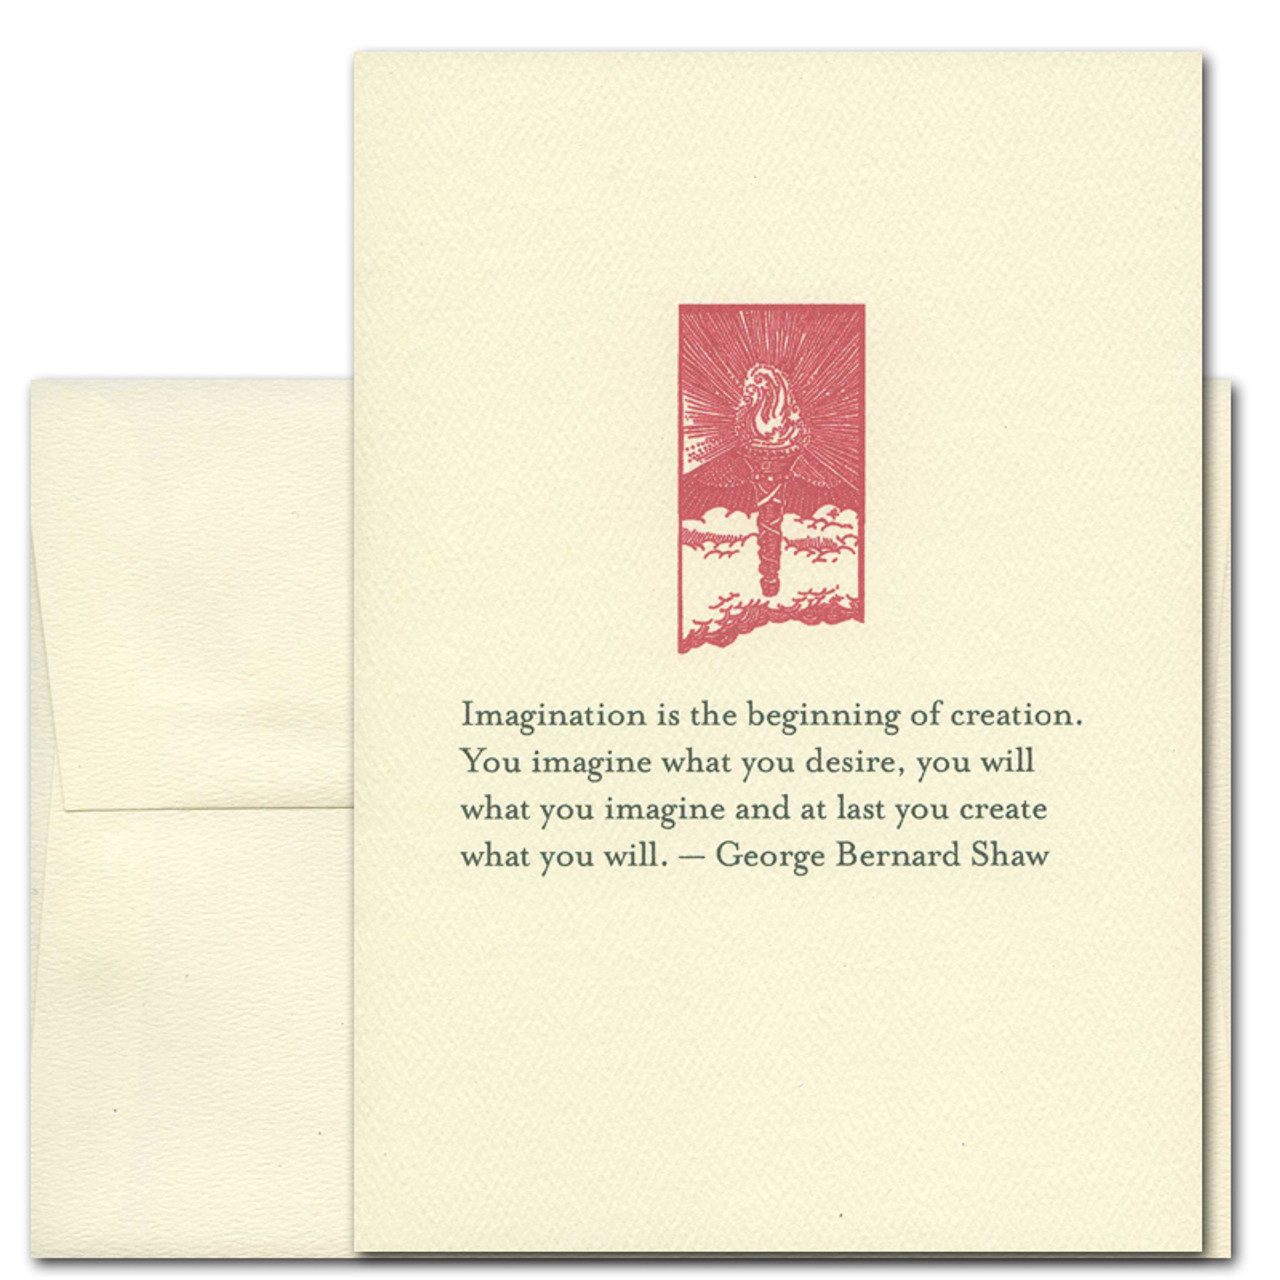 """Quotation Card """"Imagination: Shaw"""" Cover shows red vintage illustration of a torch with a quote by George Bernard Shaw that reads: """"Imagination is the beginning of creation. You imagine what you desire, you will what you imagine and at last you create what you will."""""""